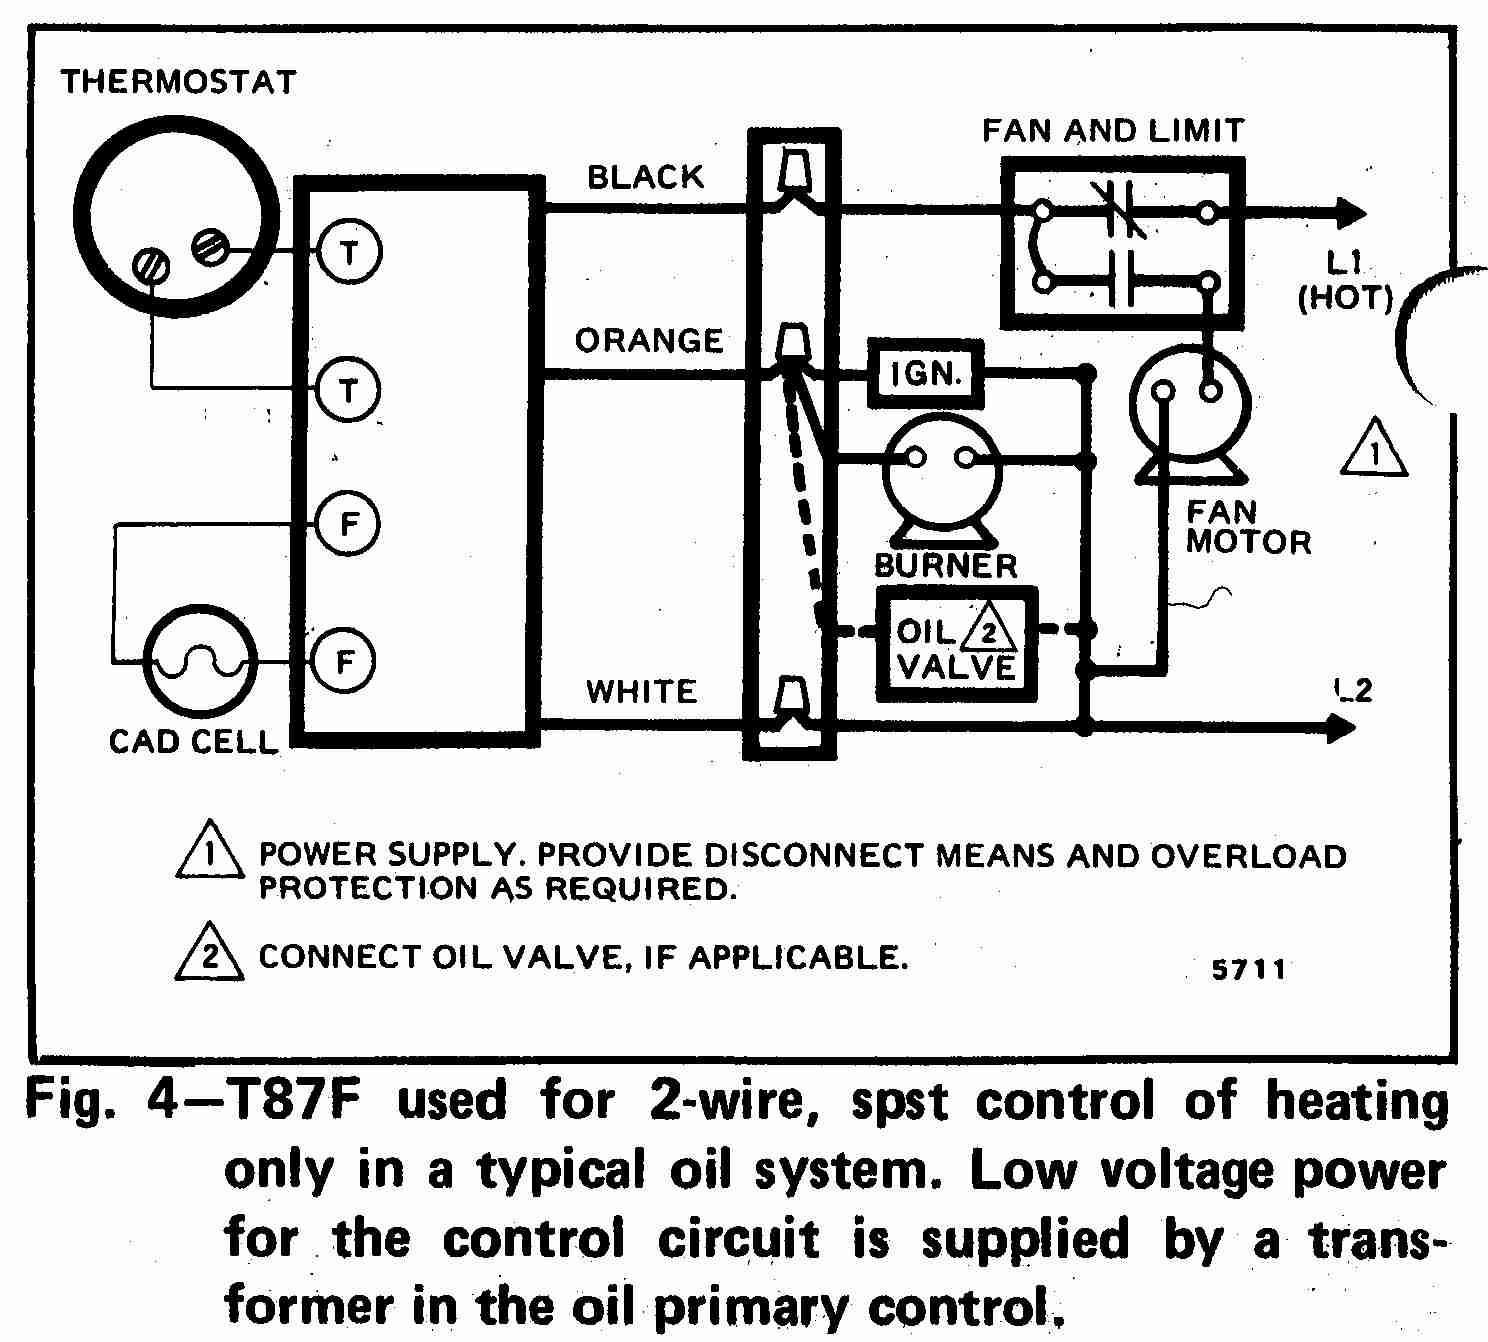 Heating and Cooling thermostat Wiring Diagram Elegant Heat Pump thermostat  Wiring Diagram Diagram Of Heating and